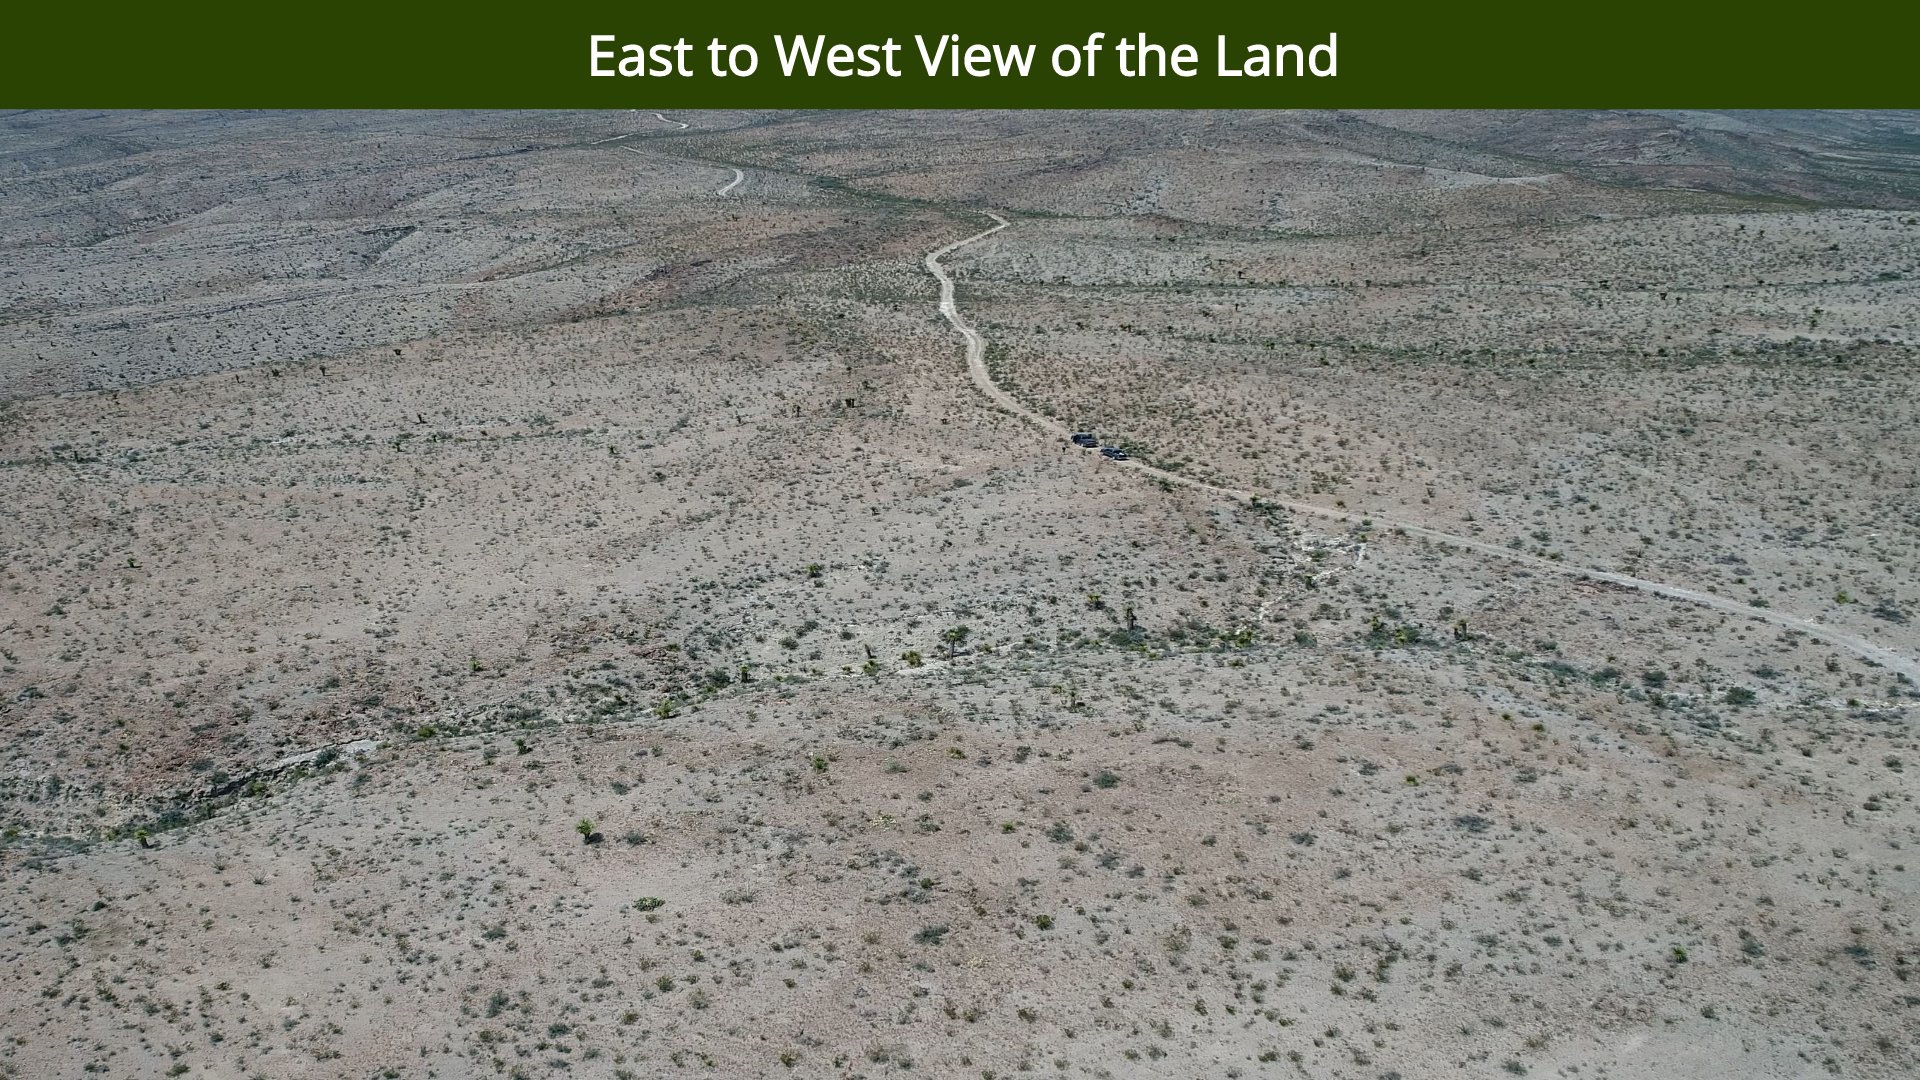 East to West View of the Land